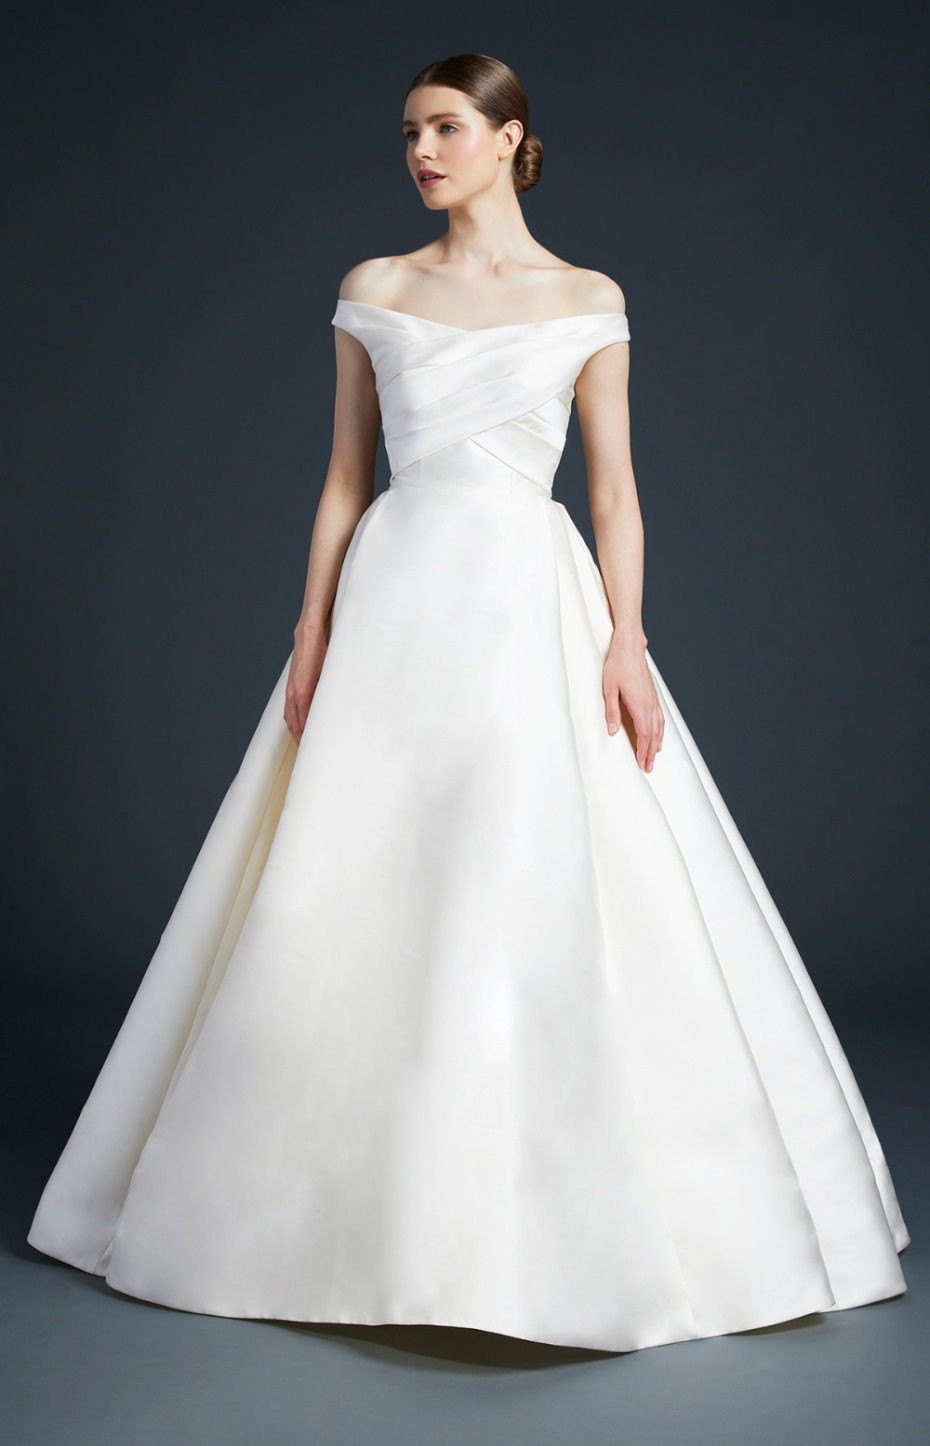 Anne Barge New 2019 Gown